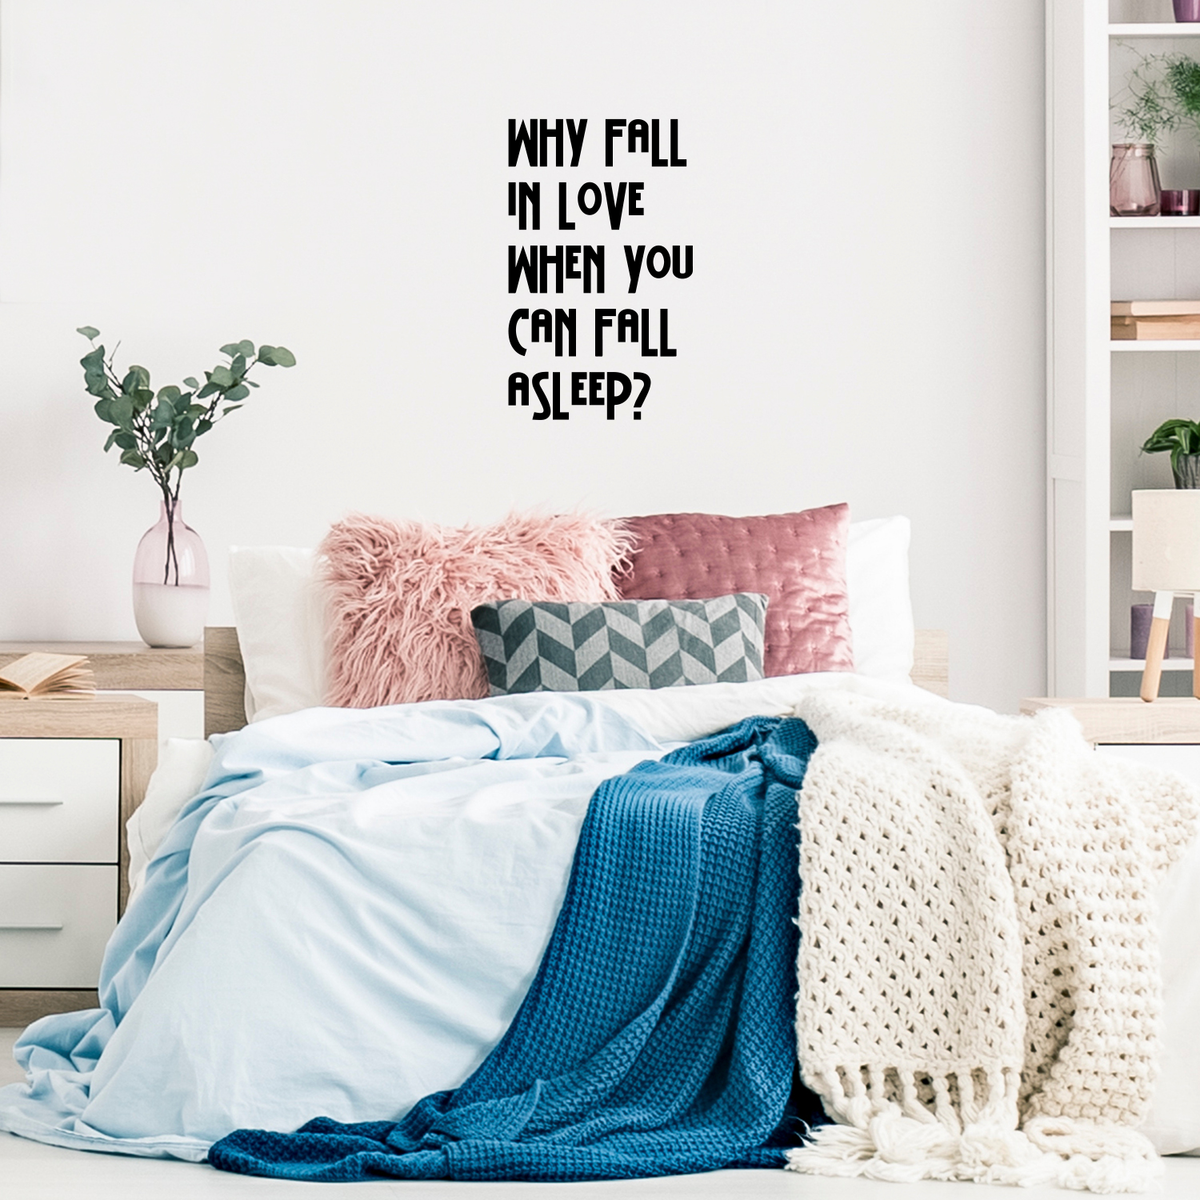 Why Fall In Love When You Can Fall Asleep Funny Quotes Wall Art